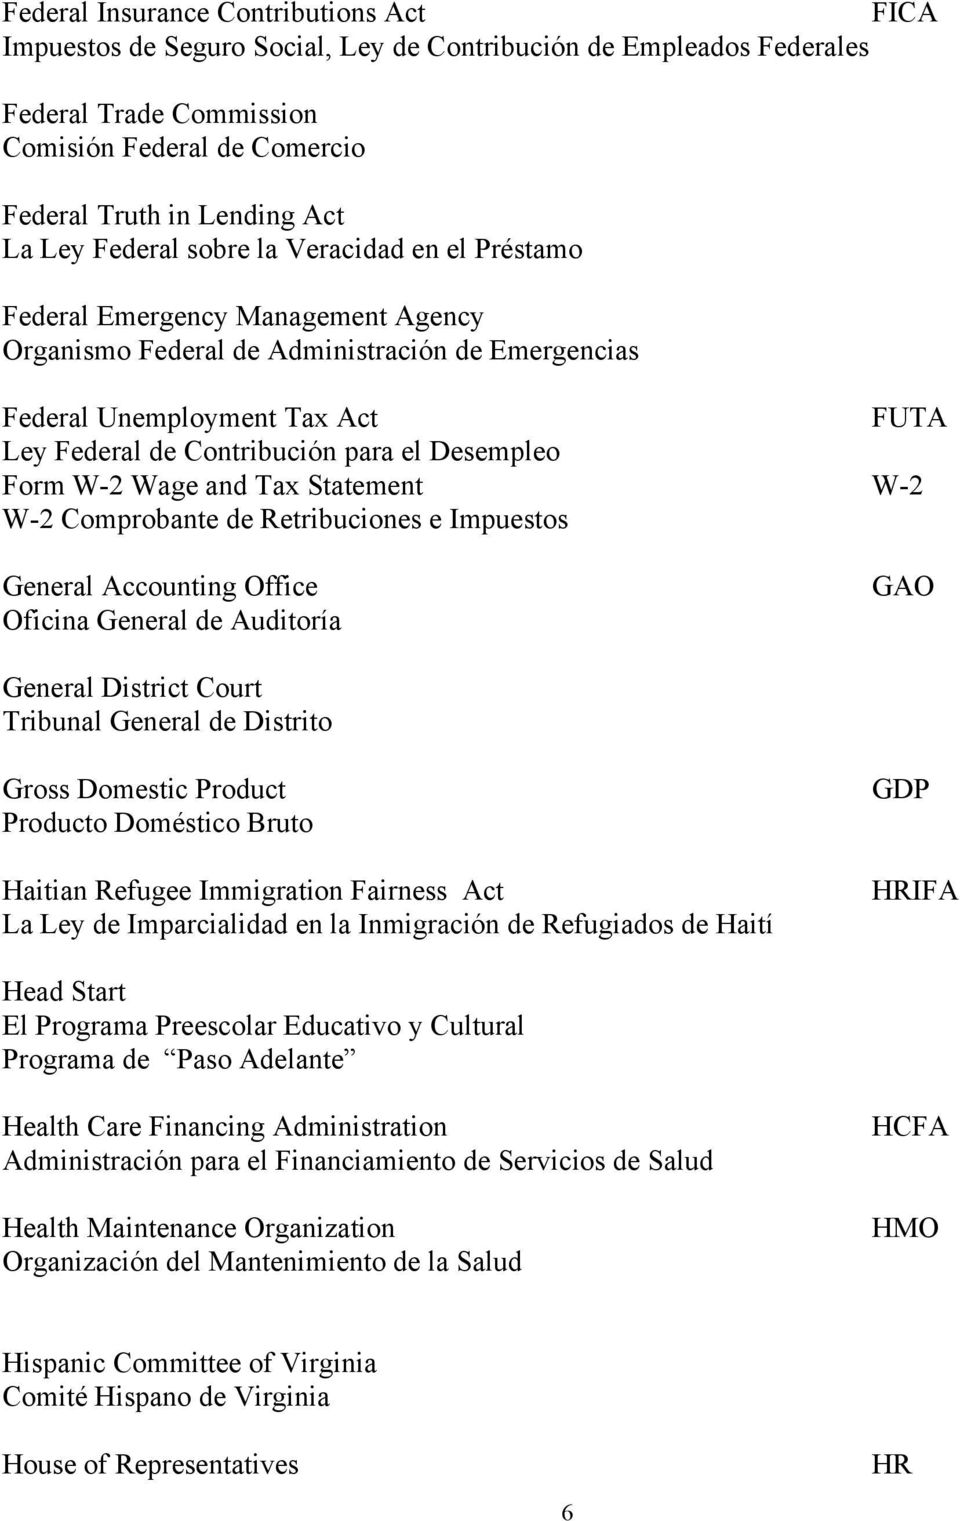 el Desempleo Form W-2 Wage and Tax Statement W-2 W-2 Comprobante de Retribuciones e Impuestos General Accounting Office Oficina General de Auditoría GAO General District Court Tribunal General de